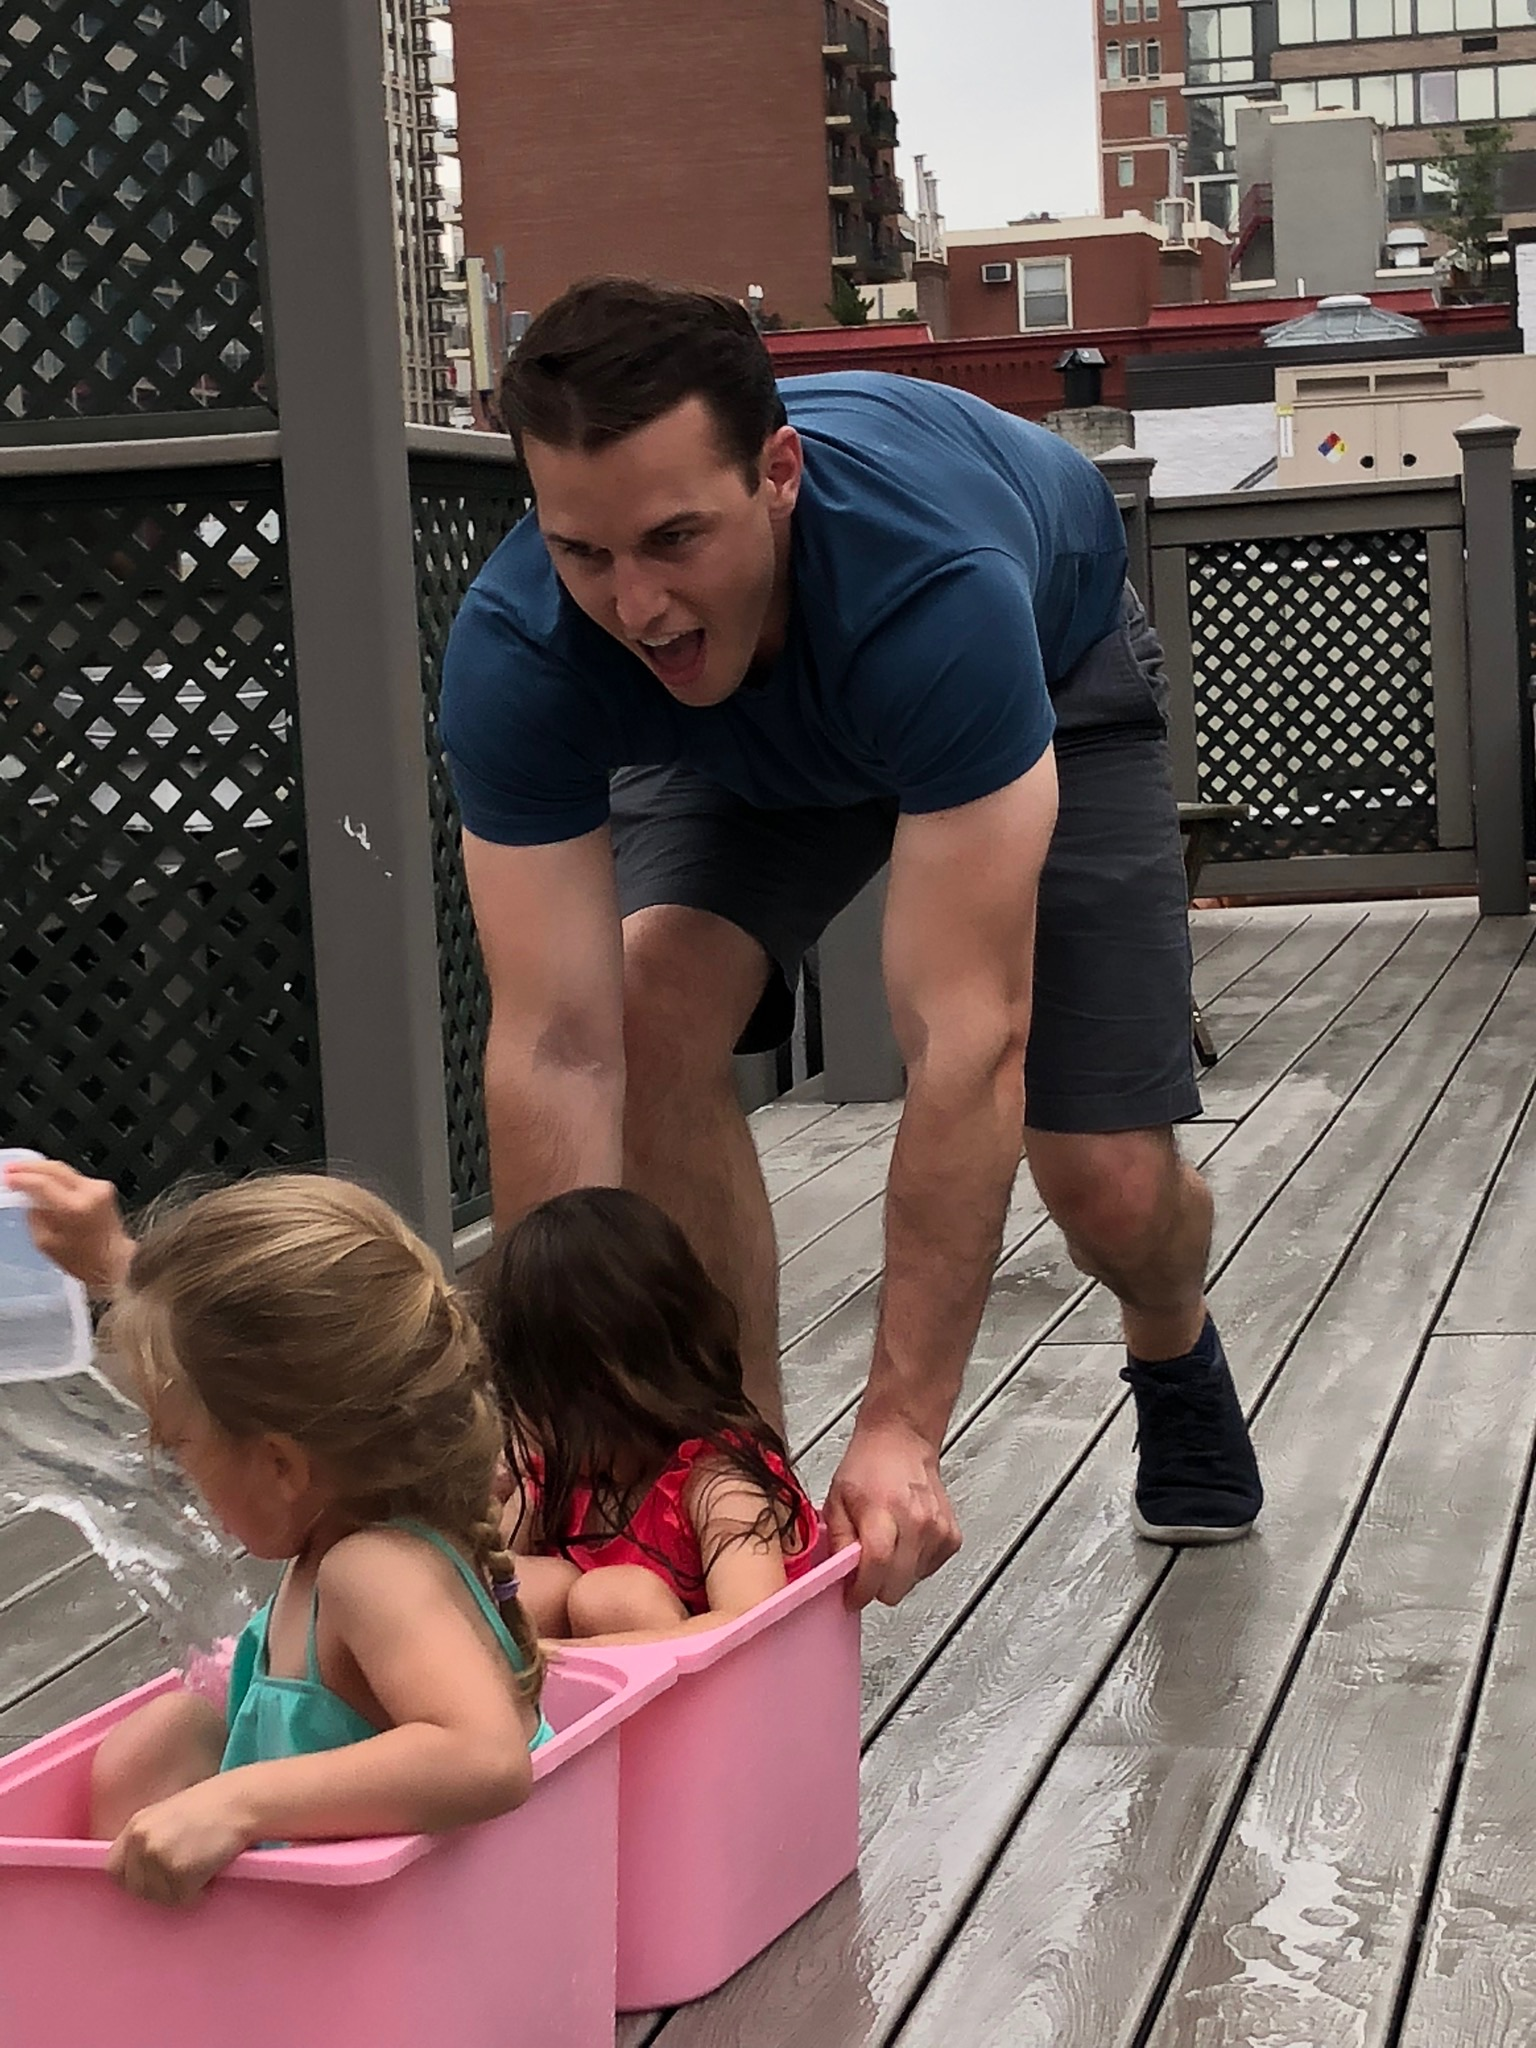 Uncle Greg pushing the girls in the buckets